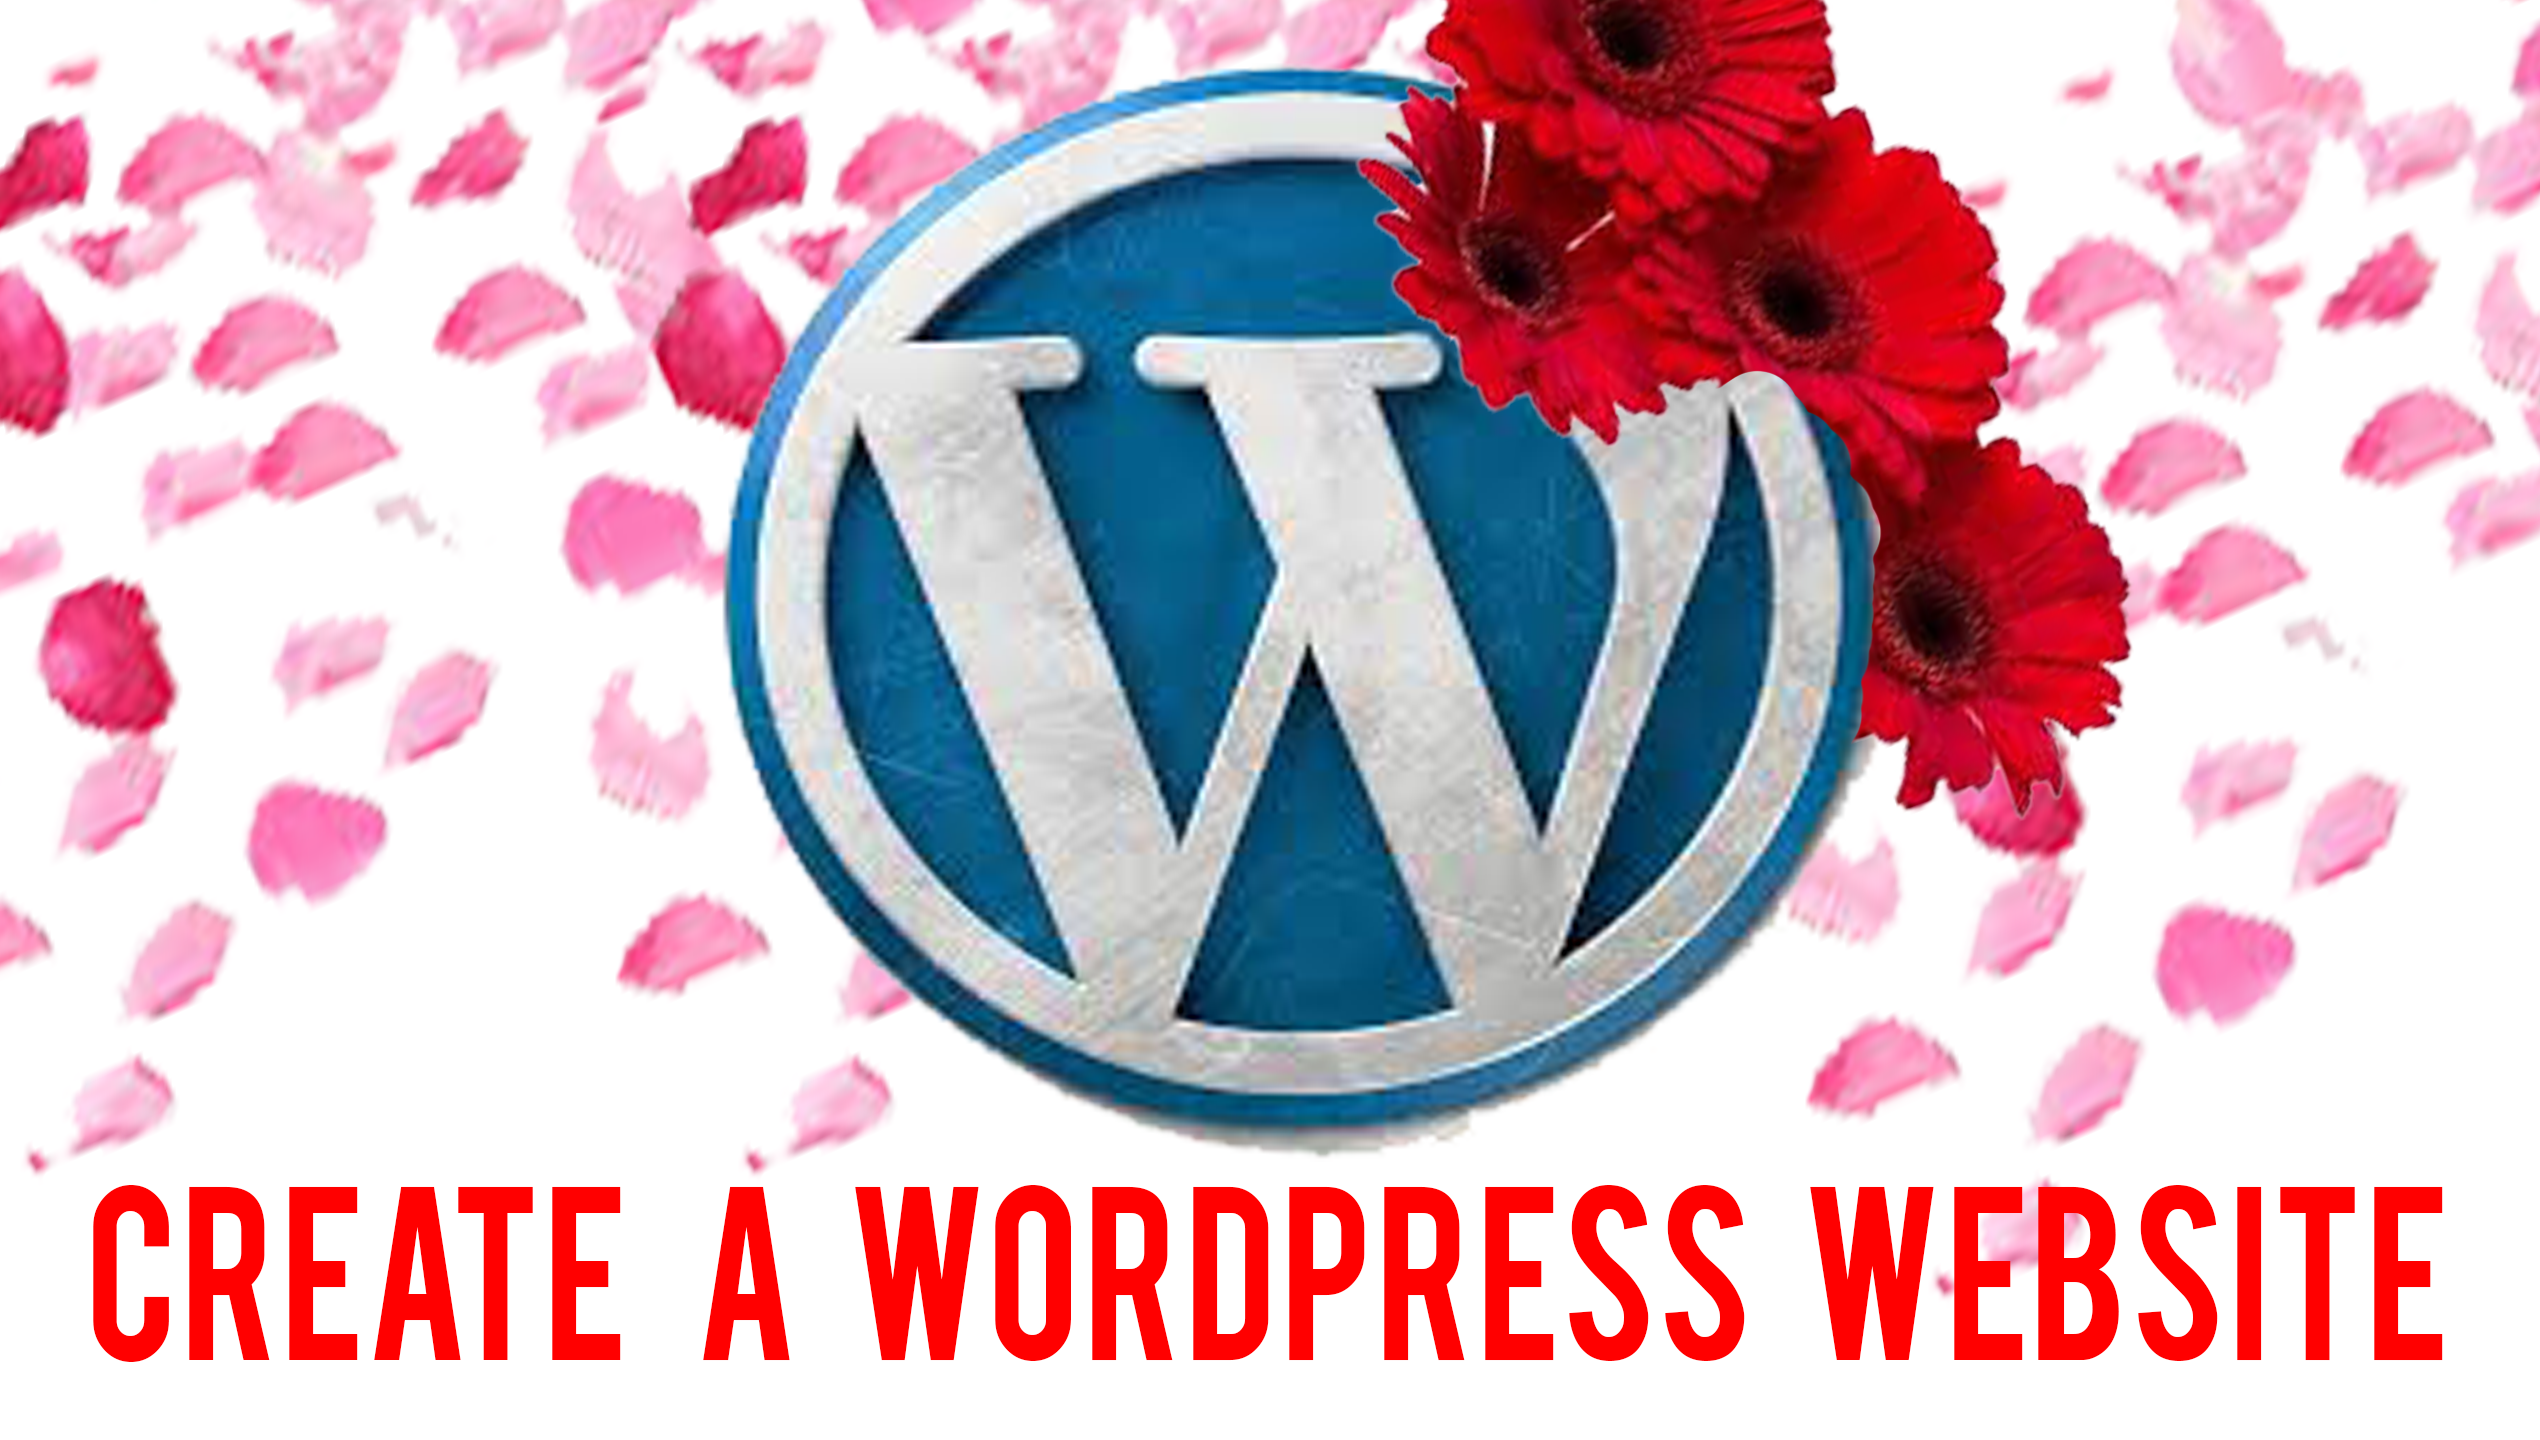 I WILL CREATE A BEAUTIFUL WORDPRESS WEBSITE FOR YOU